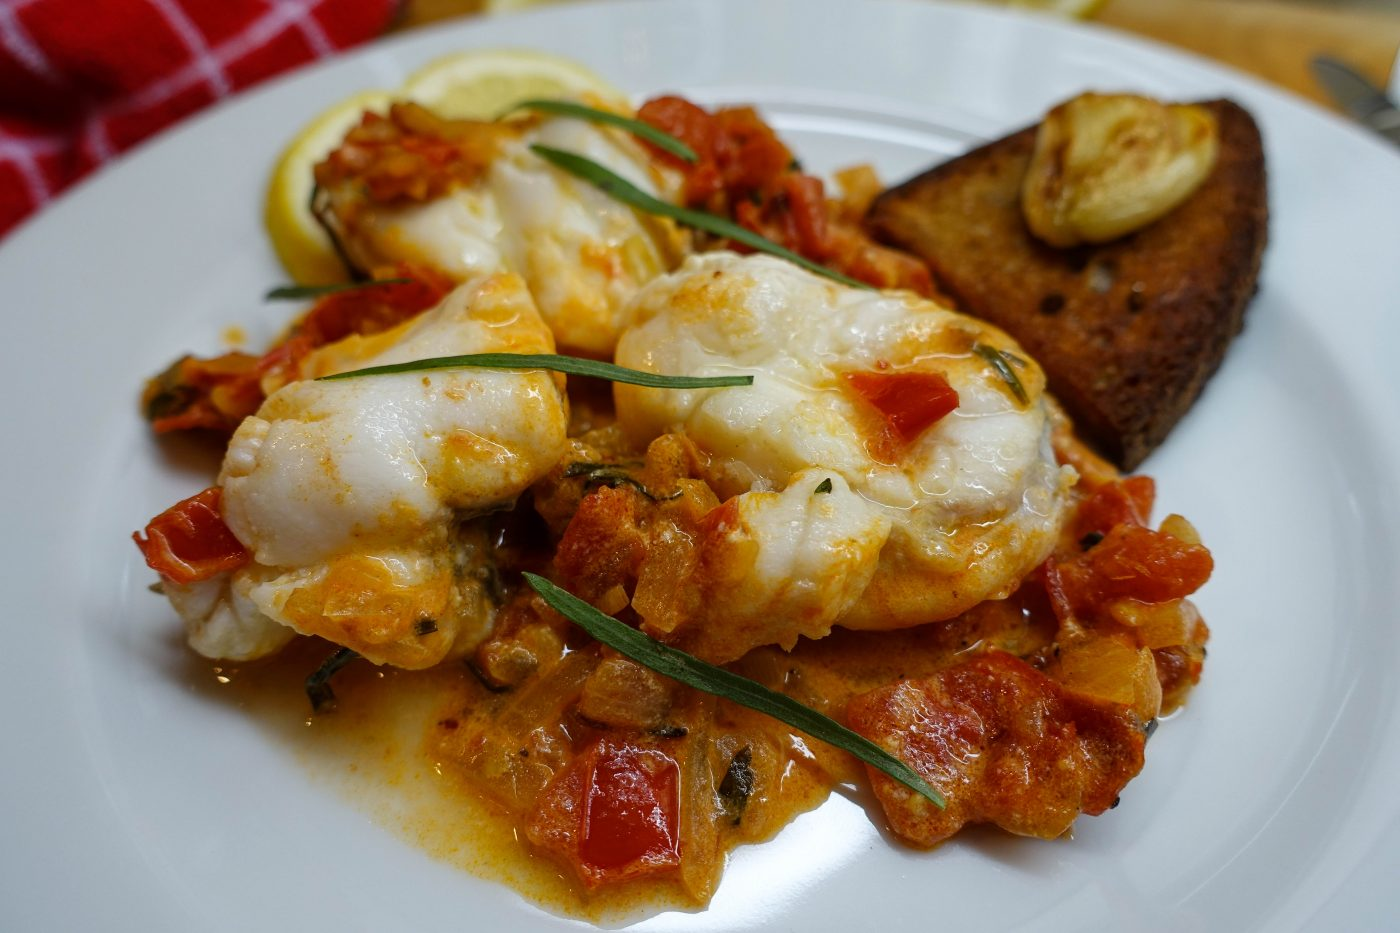 Monkfish ragout with vermouth sauce